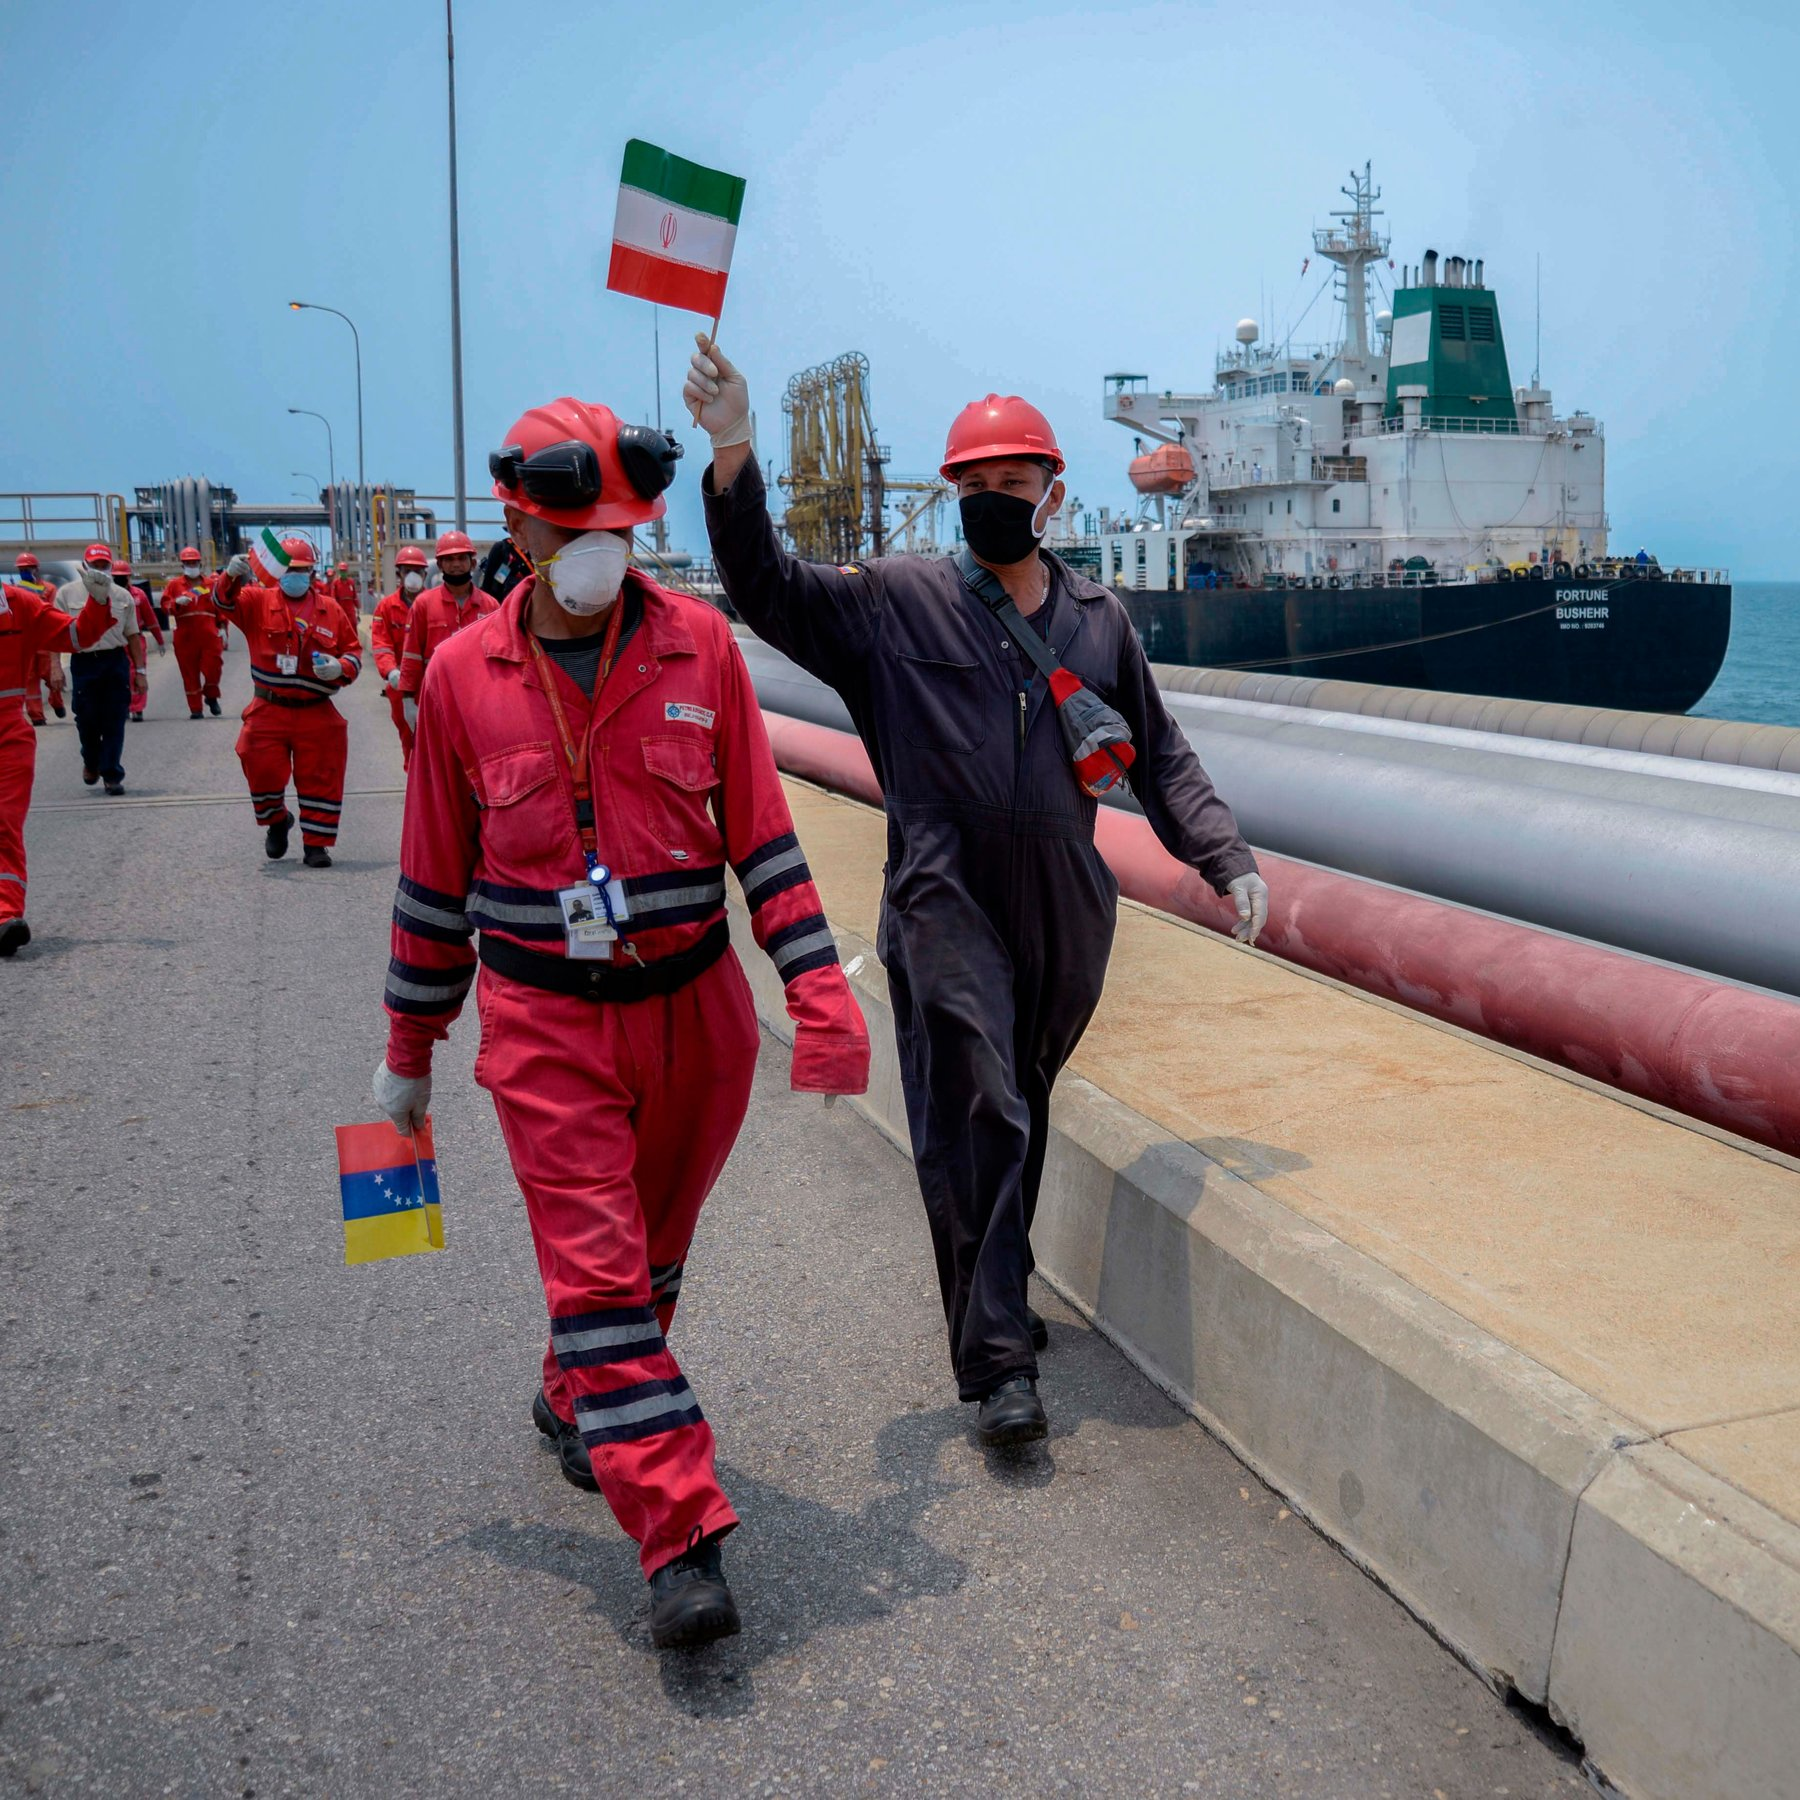 Oil-Starved Venezuela Celebrates Arrival of Tankers from Iran in 2010 (Getty)